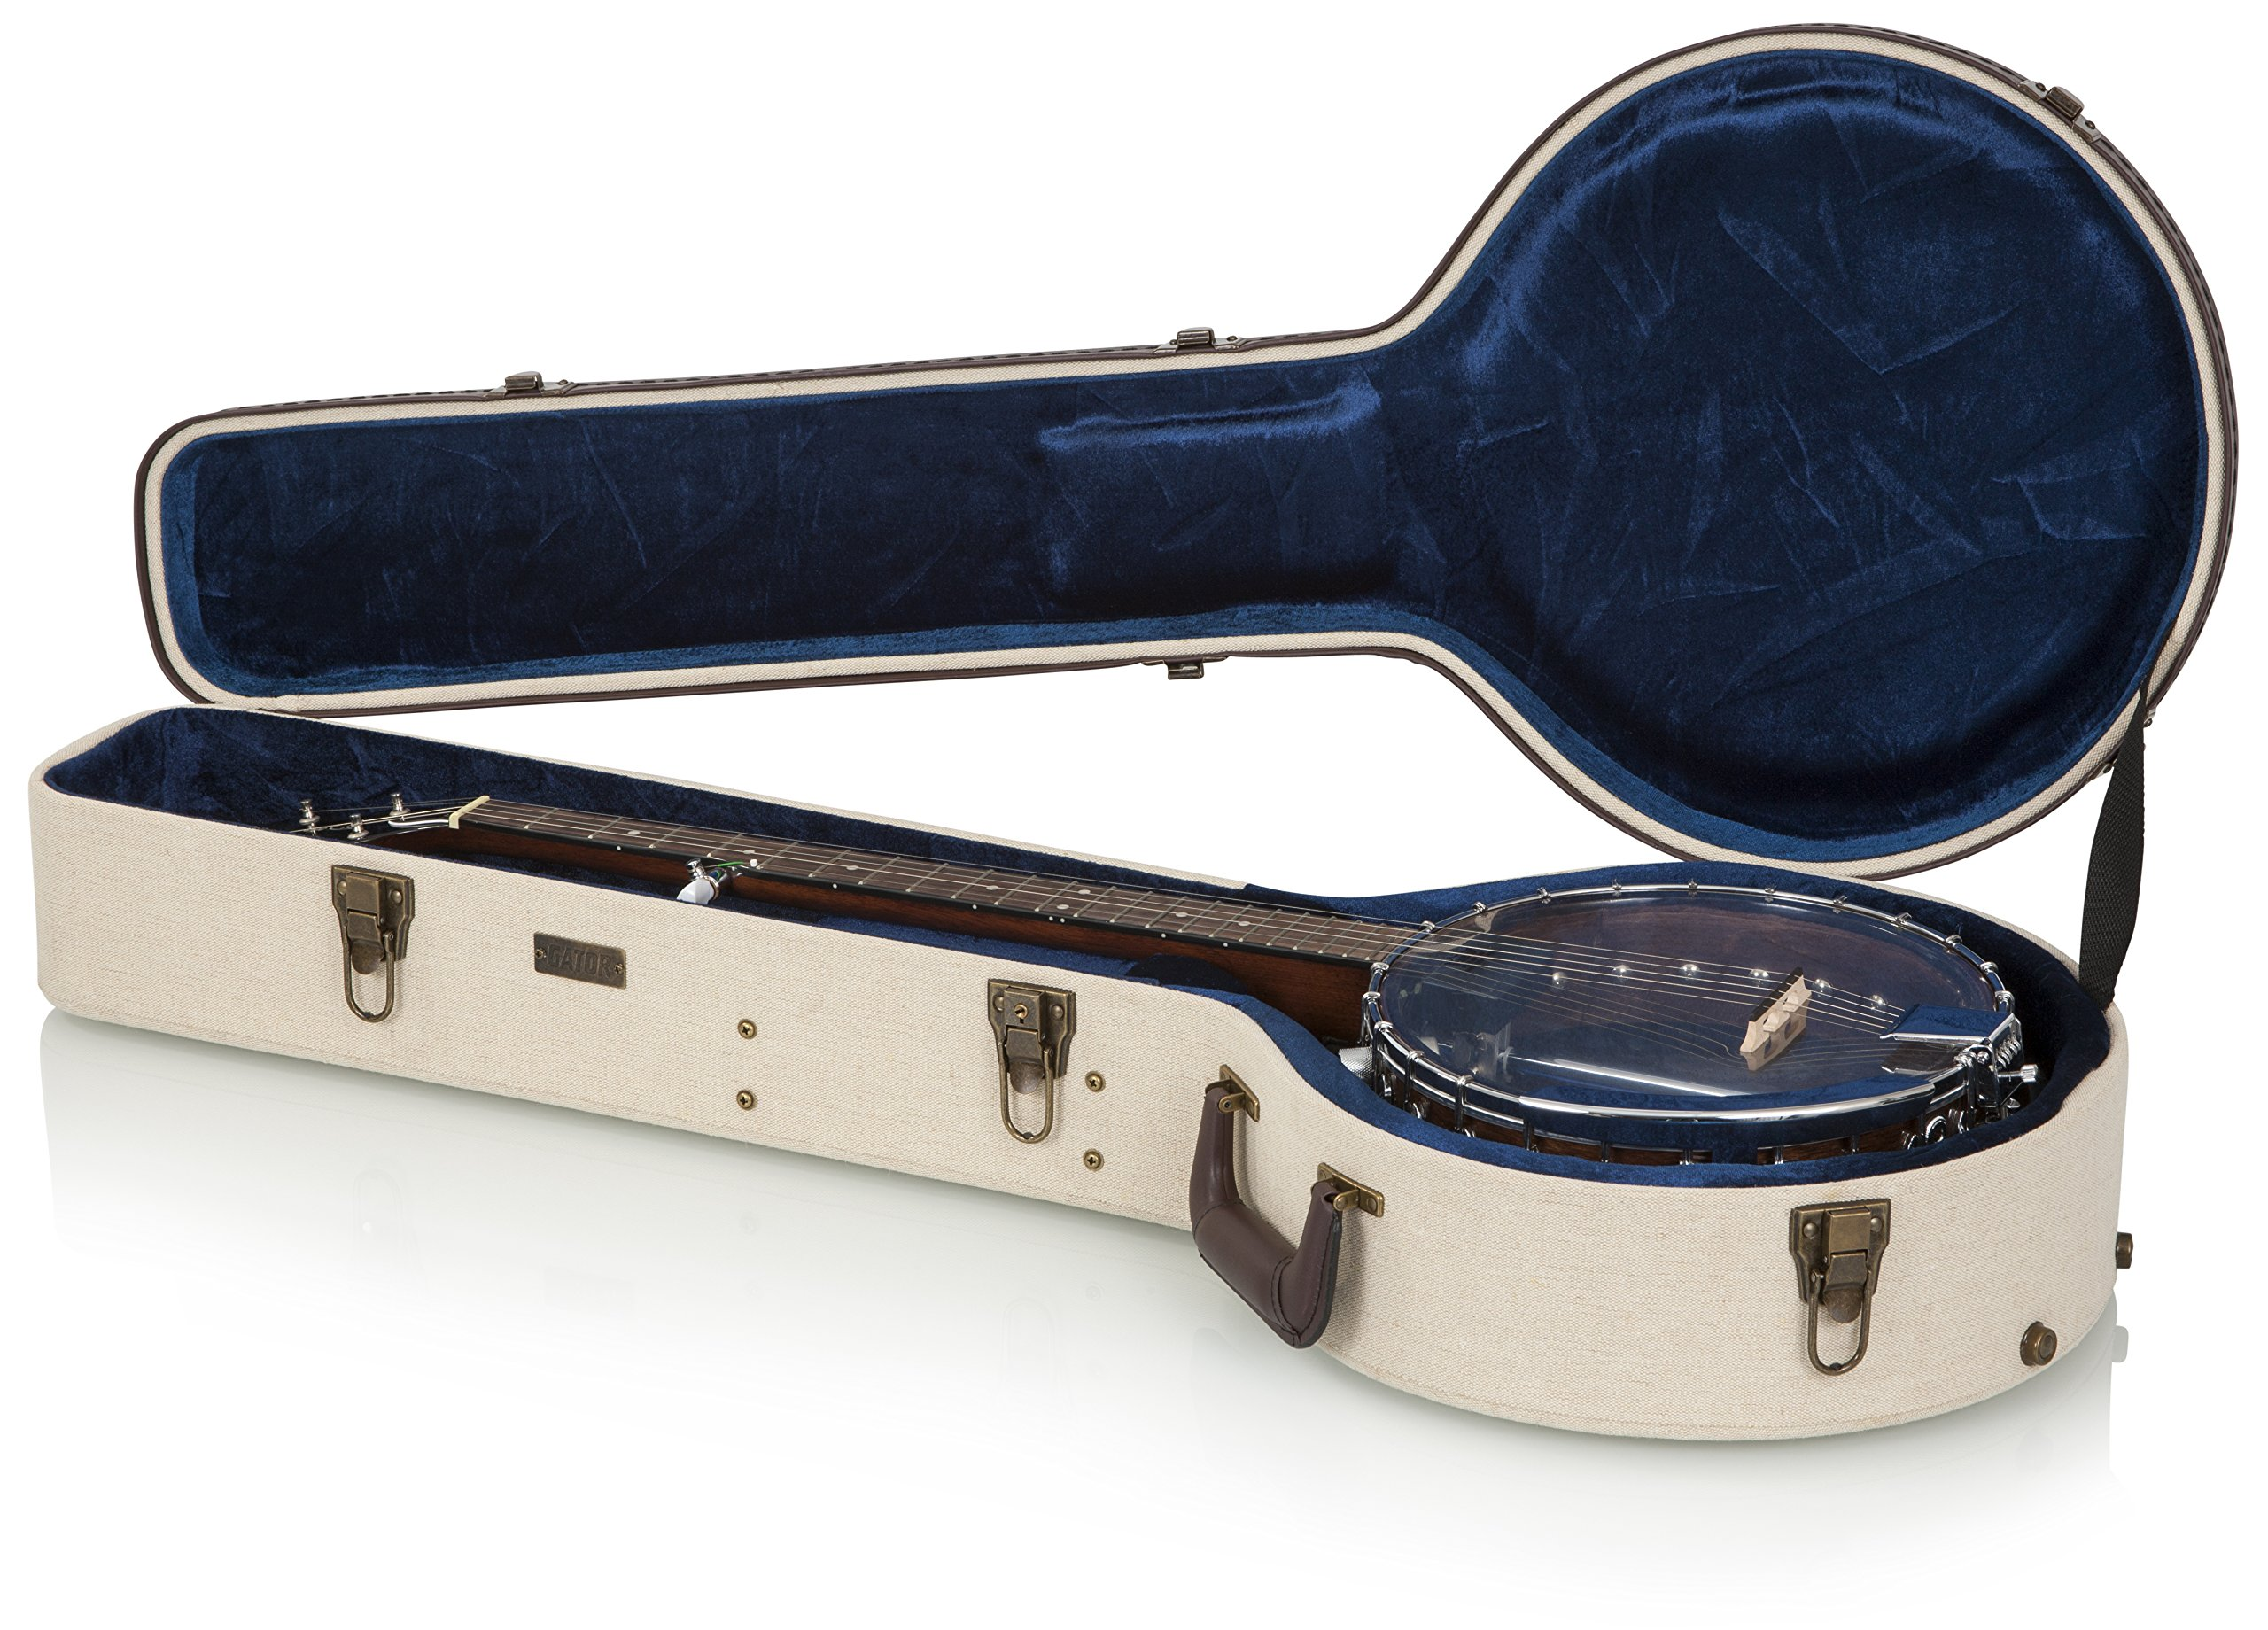 Gator Cases Journeyman Series Deluxe Wood Case for Banjos (GW-JM BANJO XL) by Gator (Image #2)